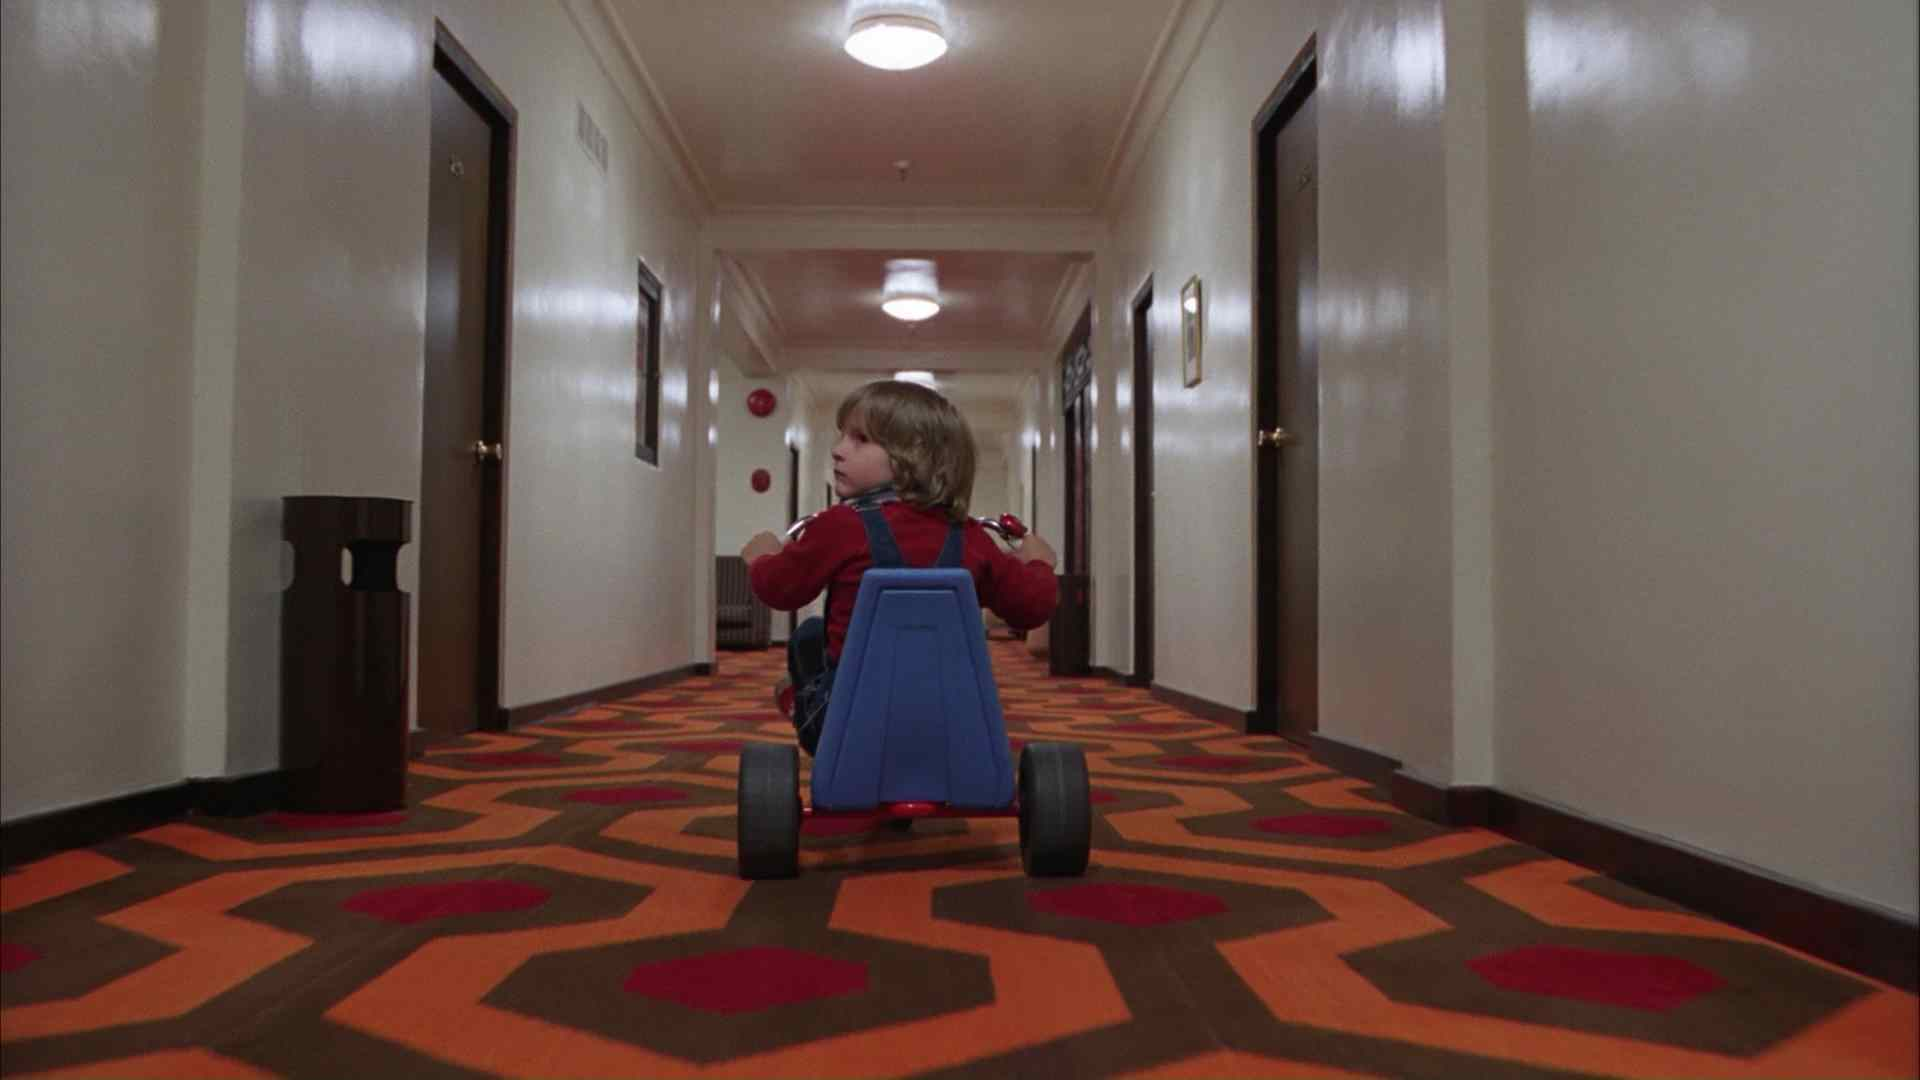 the shining was thought of by Stephen King after he had an errie dream at the stanley hotel.